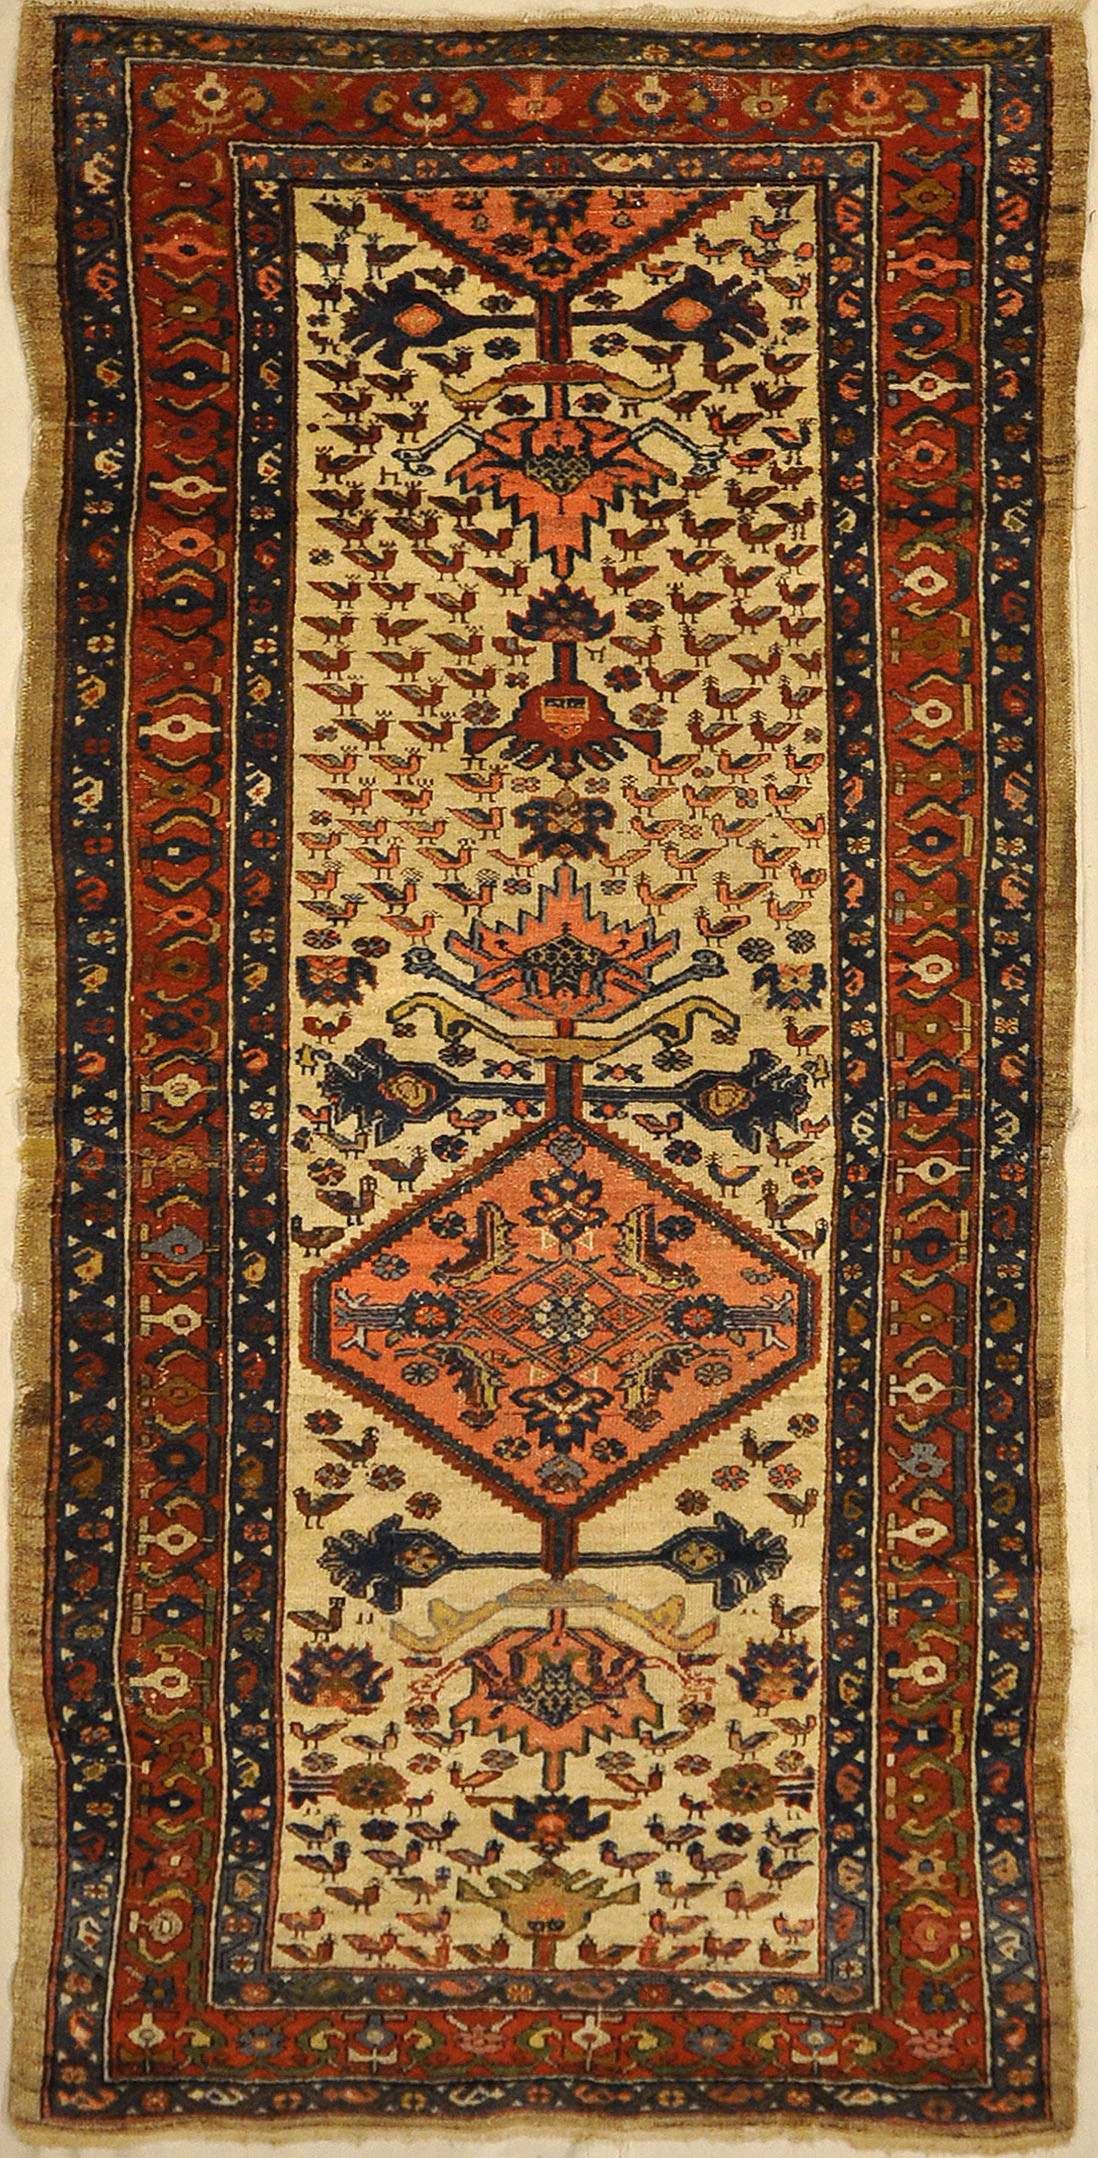 Northwest Persian Antique Karajeh Rug. A piece of genuine authentic antique woven carpet art sold by Santa Barbara Design Center, Rugs and More.